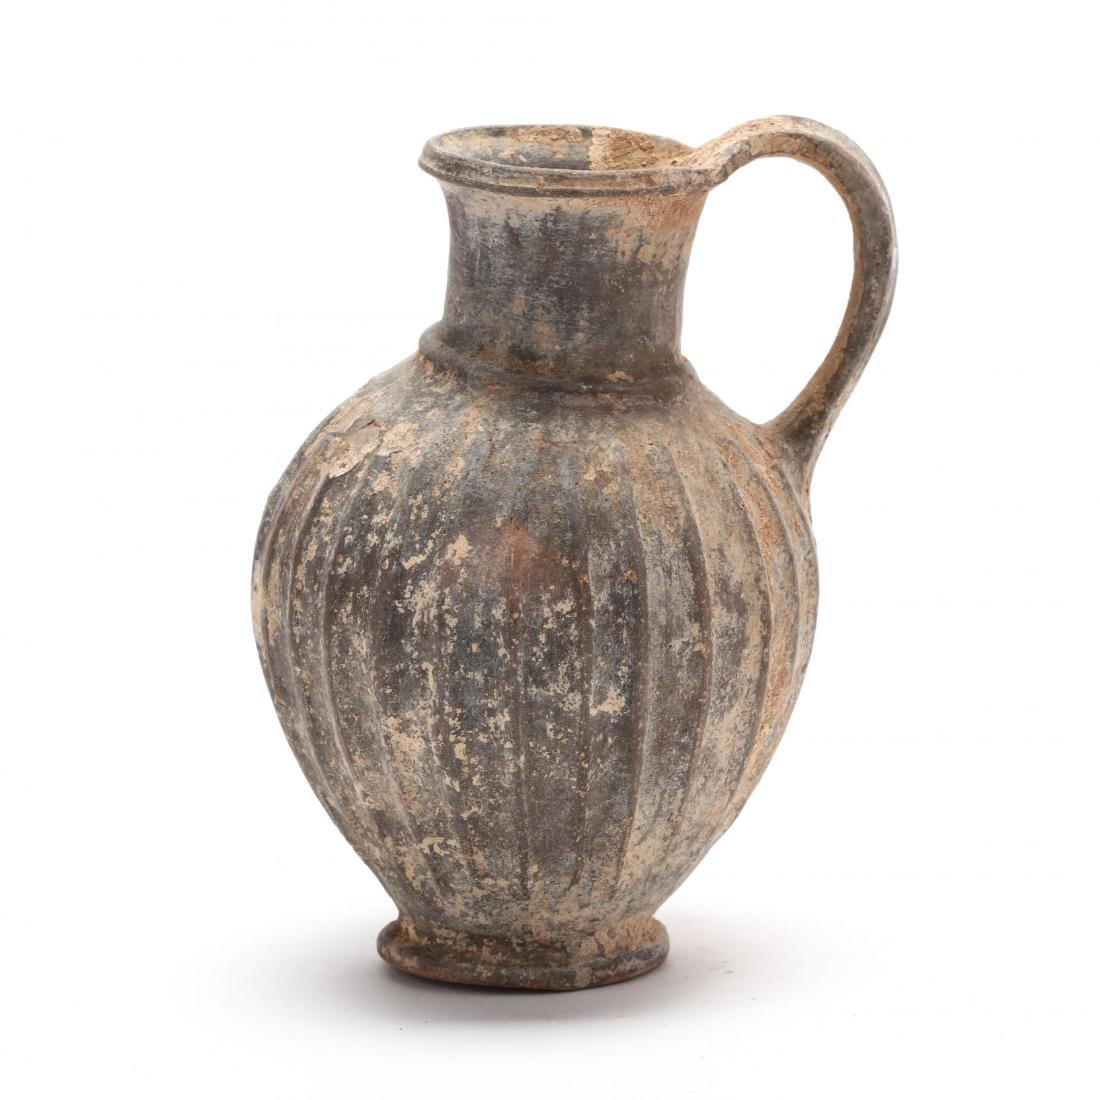 Cypriot Late Bronze Age Jug - 3